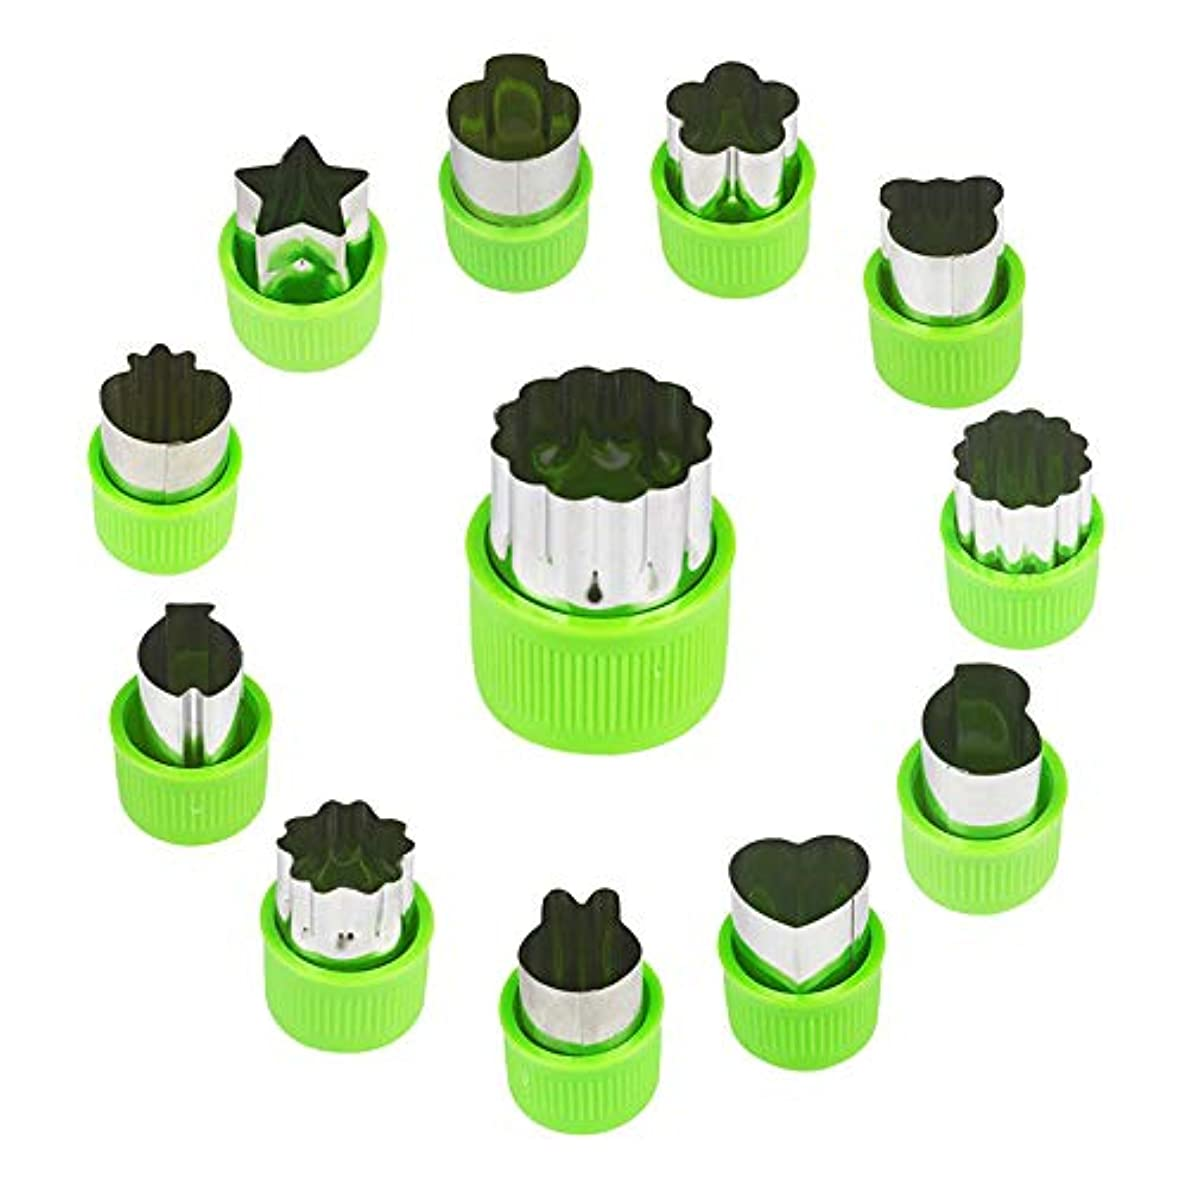 12Pcs Vegetable Cutters Set Fruit Cookie Cutter Stamps Mold Stainless Steel Sandwiches Cutter Shapes Set, for Kids Baking, DIY Fun Food Decoration, Green